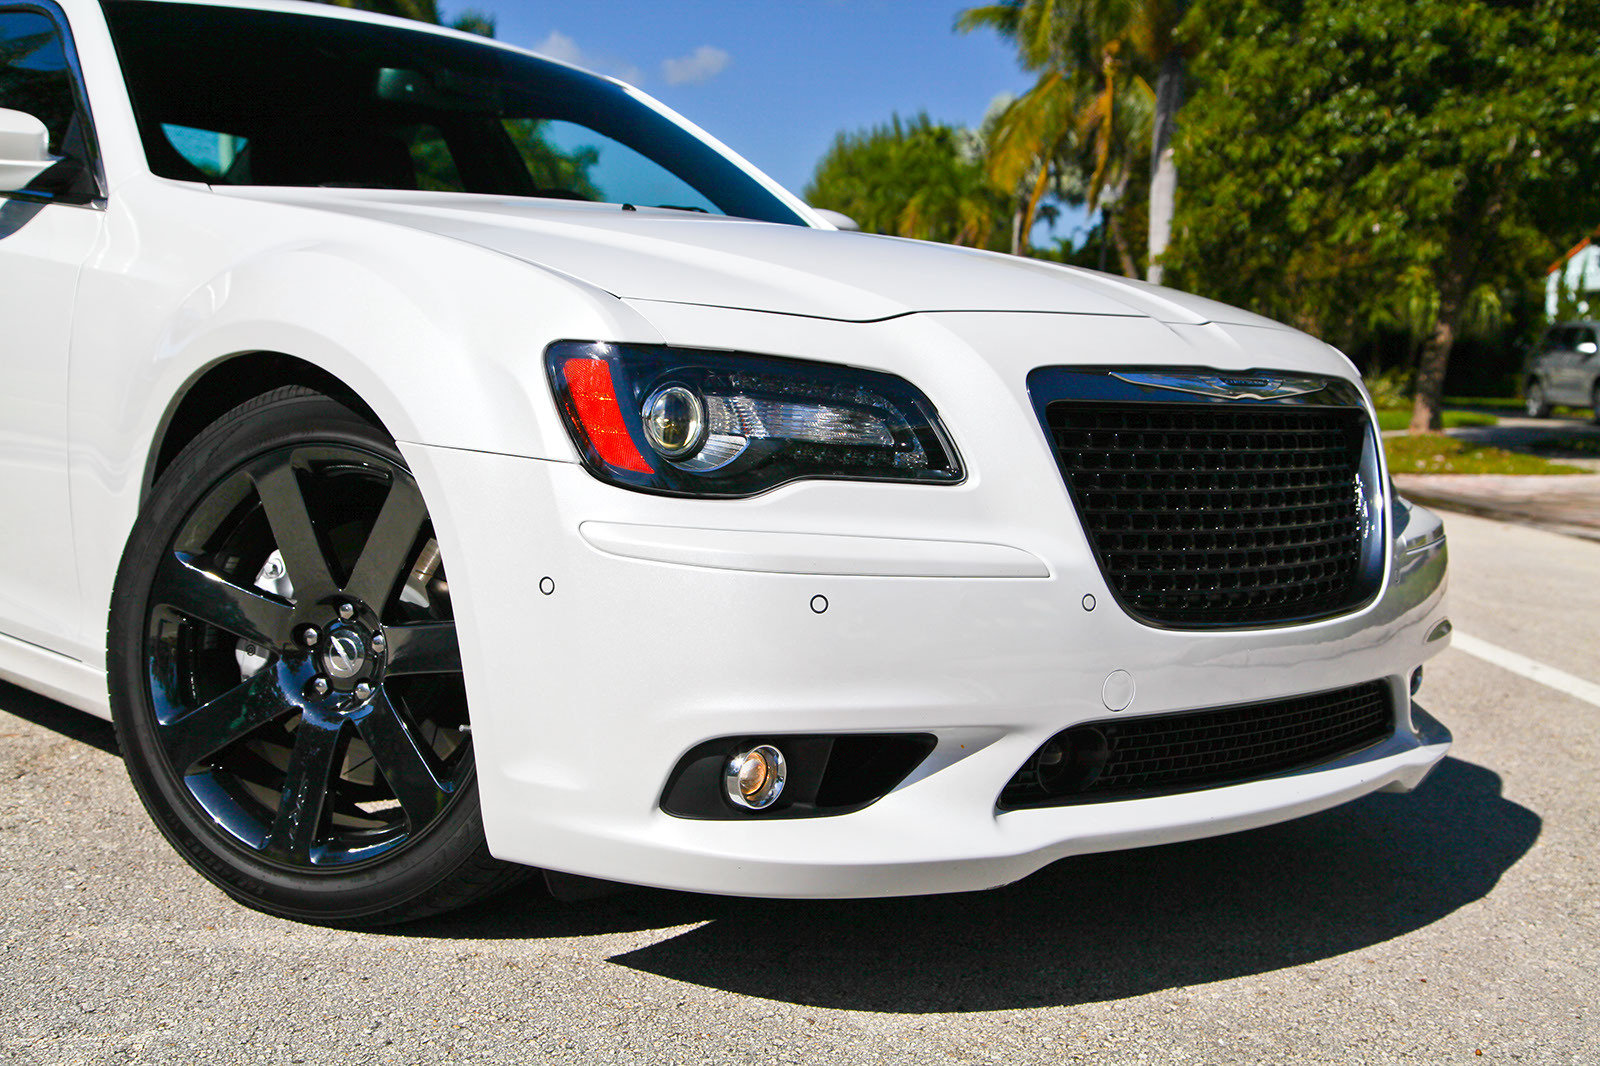 2013 chrysler 300 srt8 picture 528590 car review top speed. Cars Review. Best American Auto & Cars Review